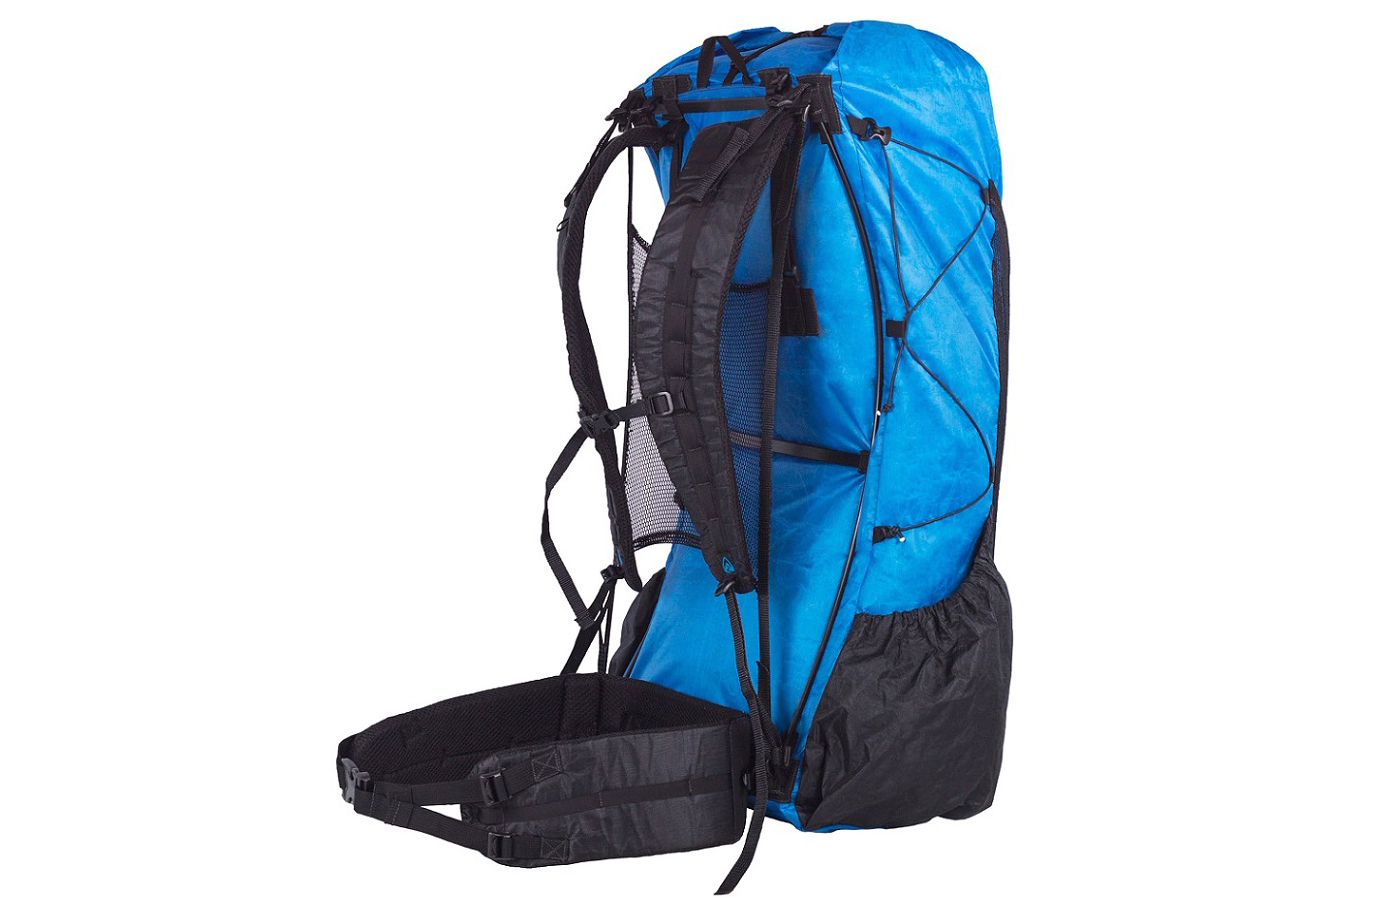 Zpacks Arc Blast backpack